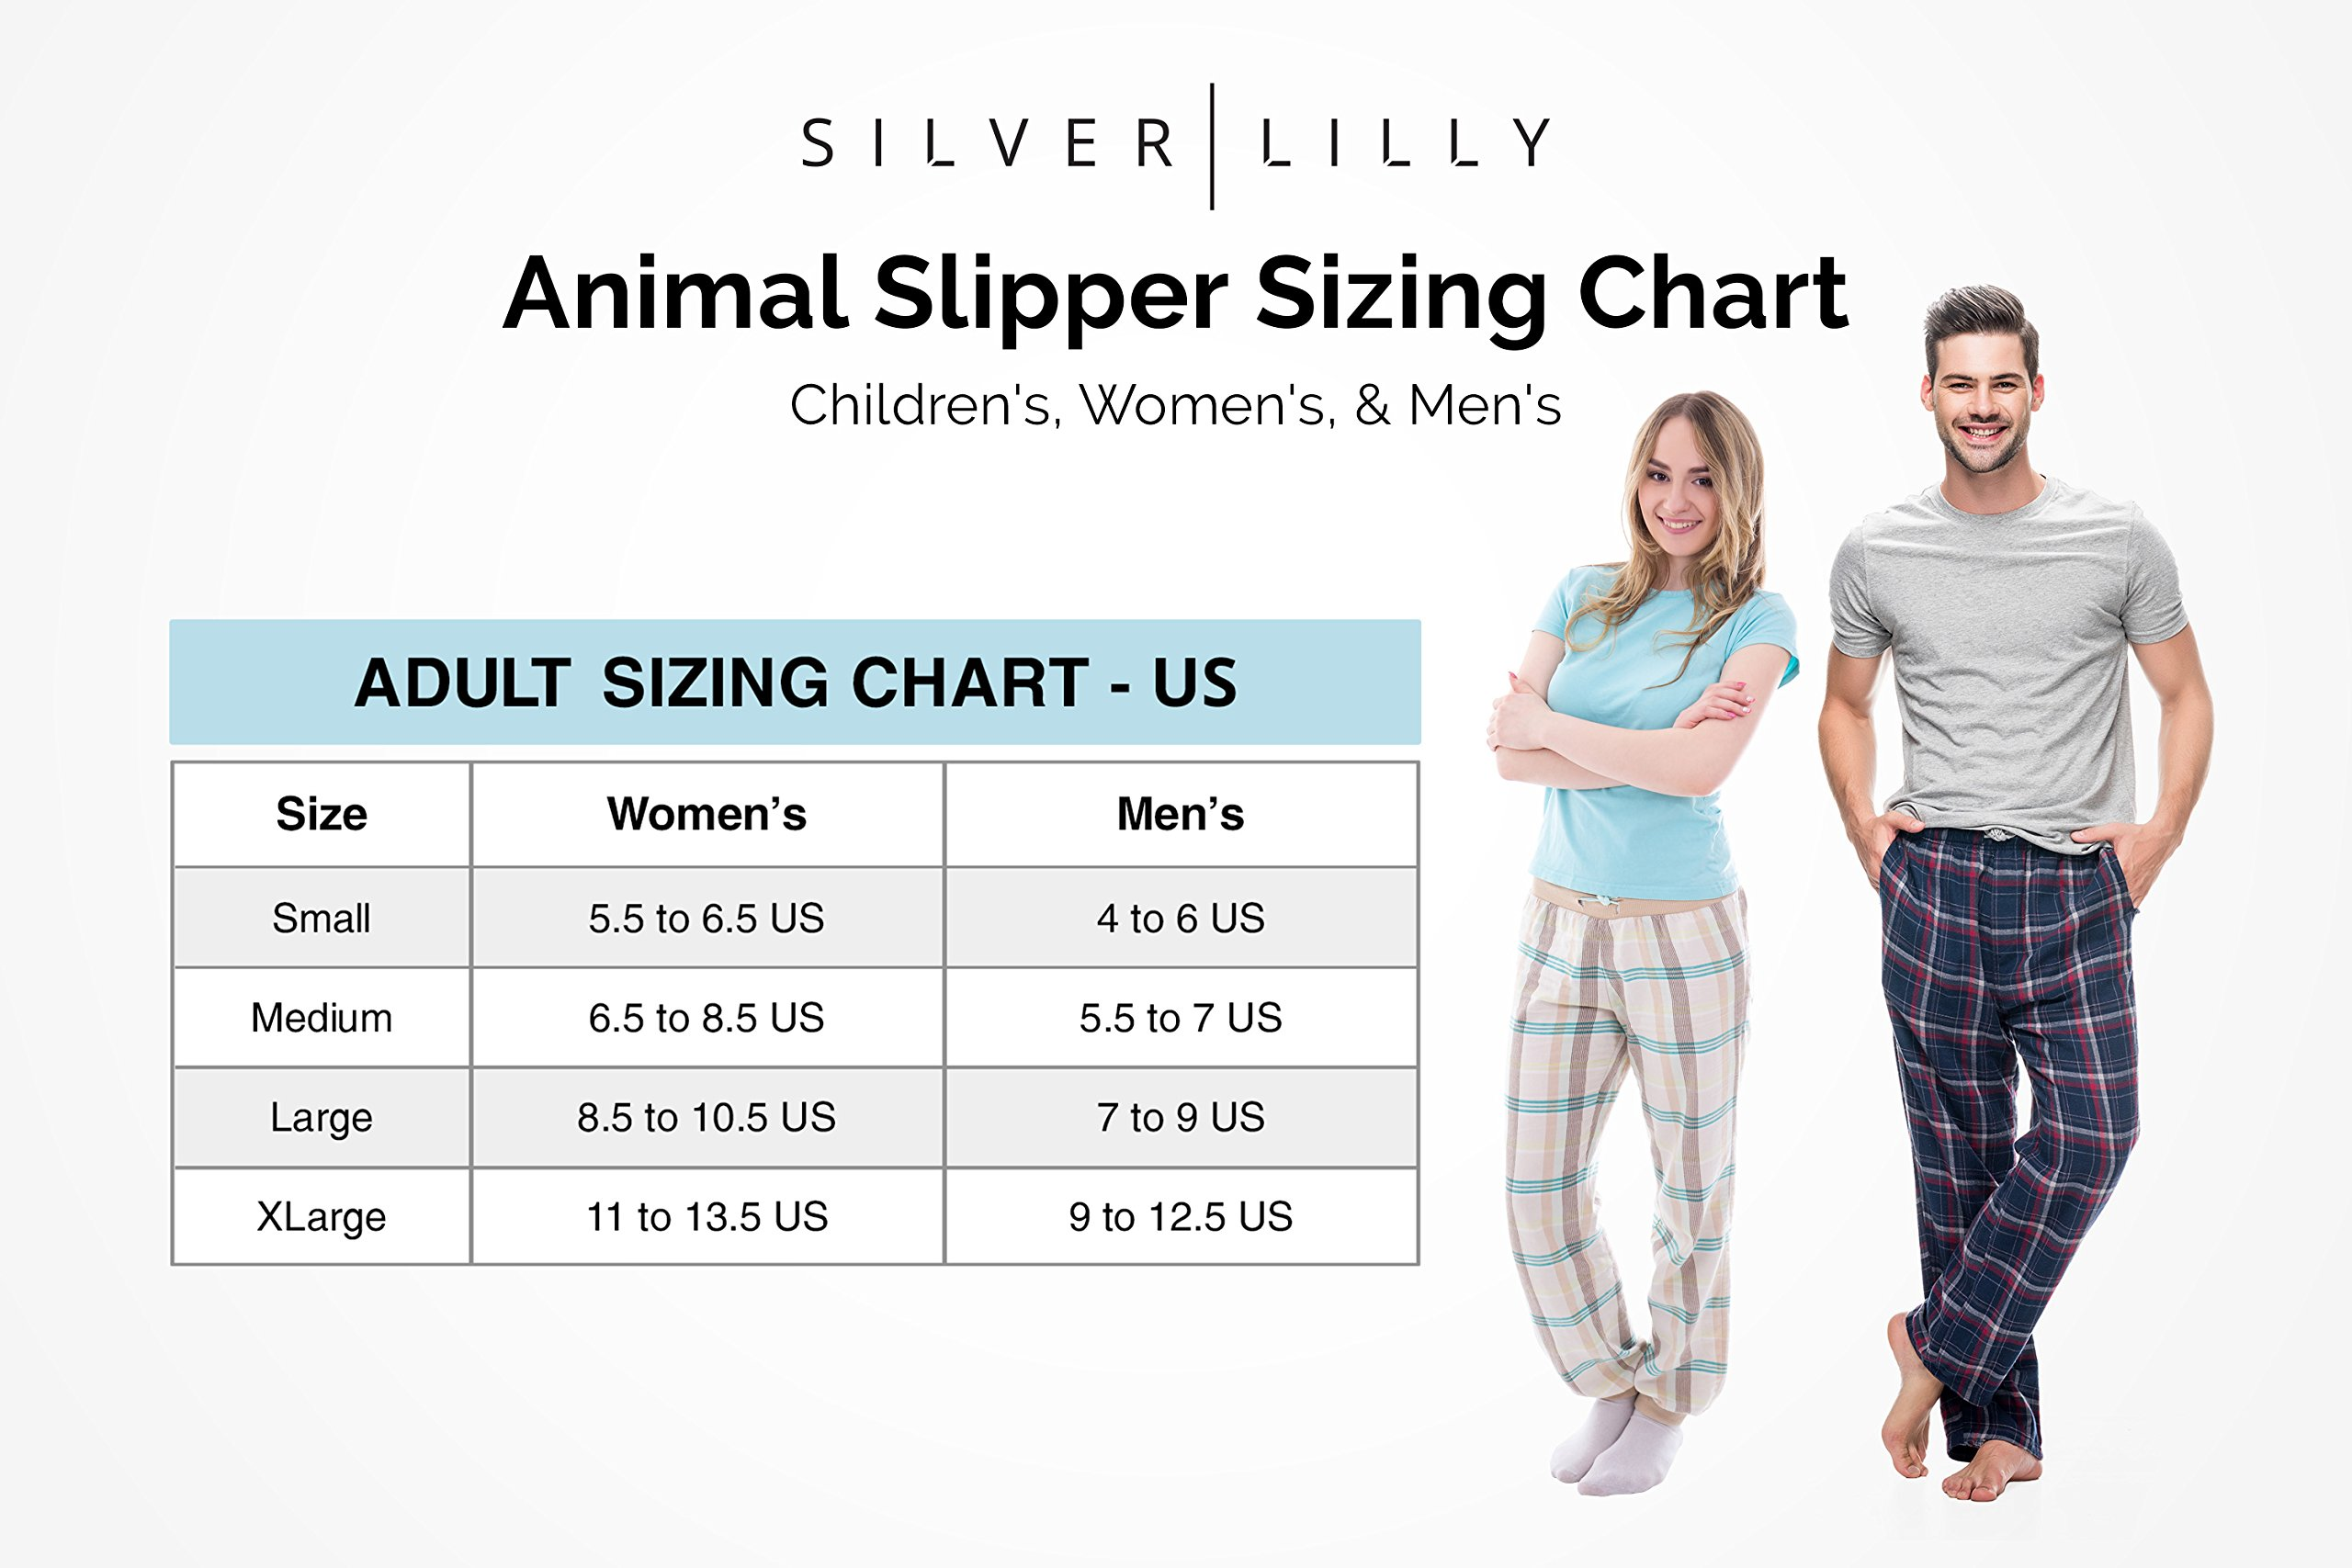 Silver Lilly Flamingo Slippers - Plush Animal Slippers w/Memory Foam Support (Pink, Medium) by Silver Lilly (Image #7)